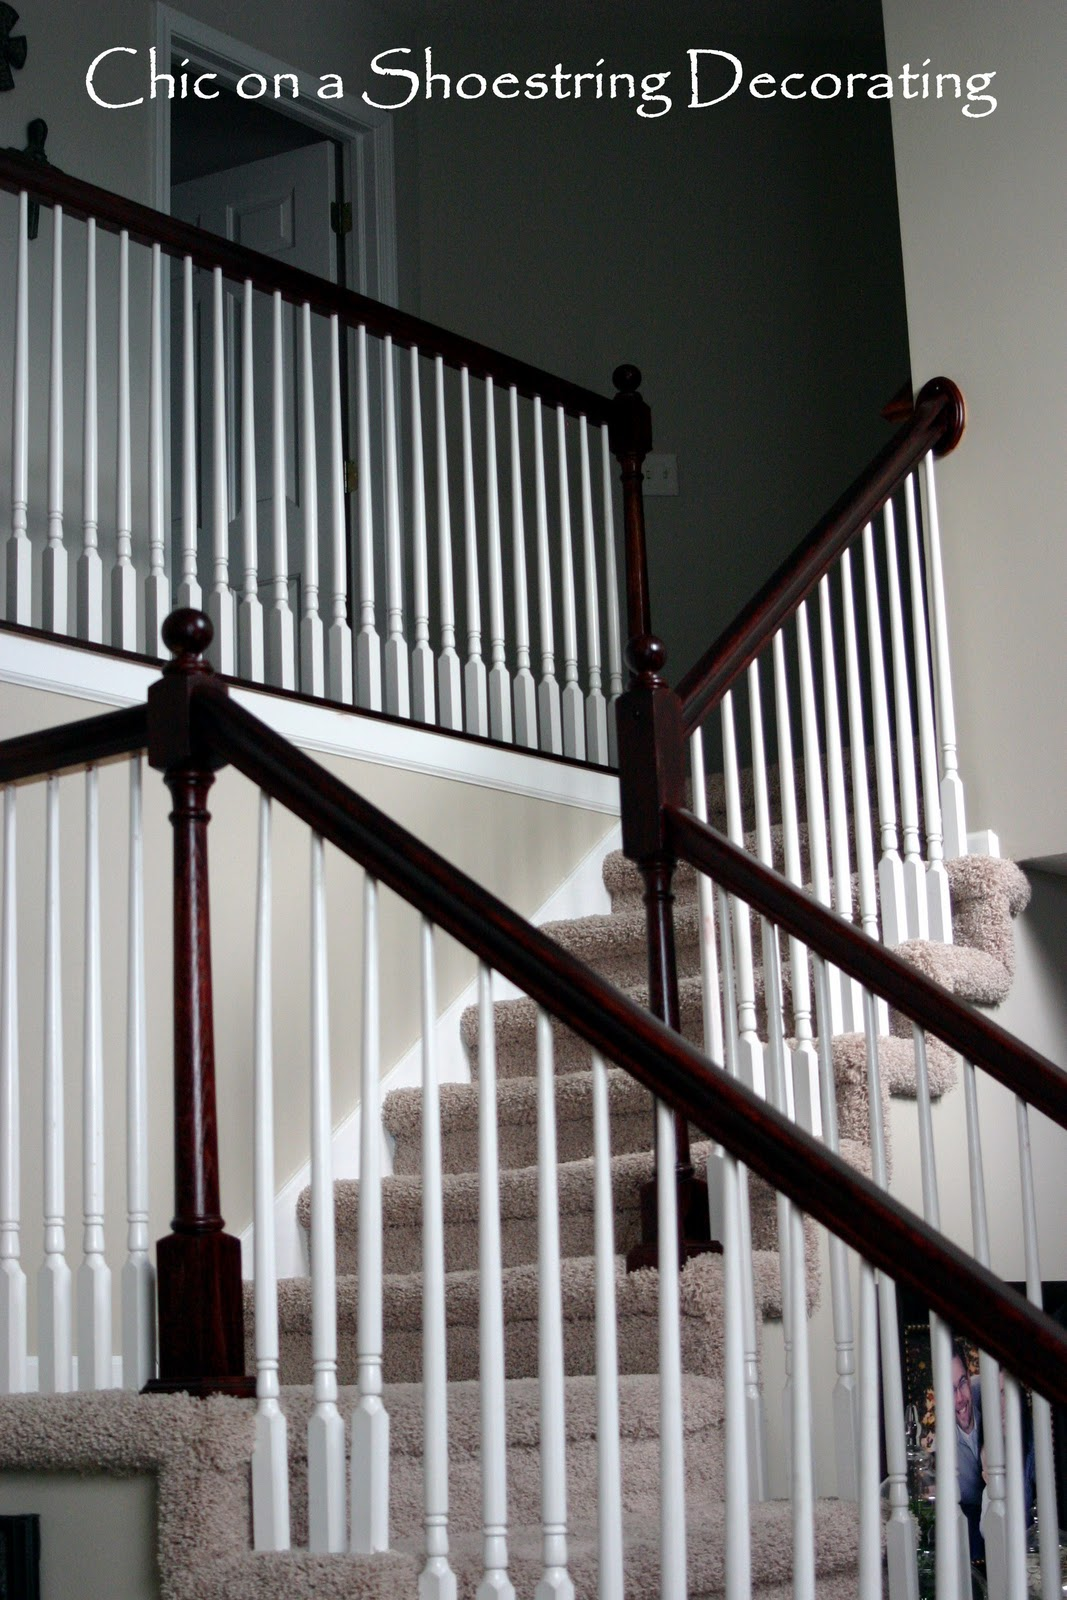 Chic On A Shoestring Decorating: How To Stain Stair Railings And Banisters